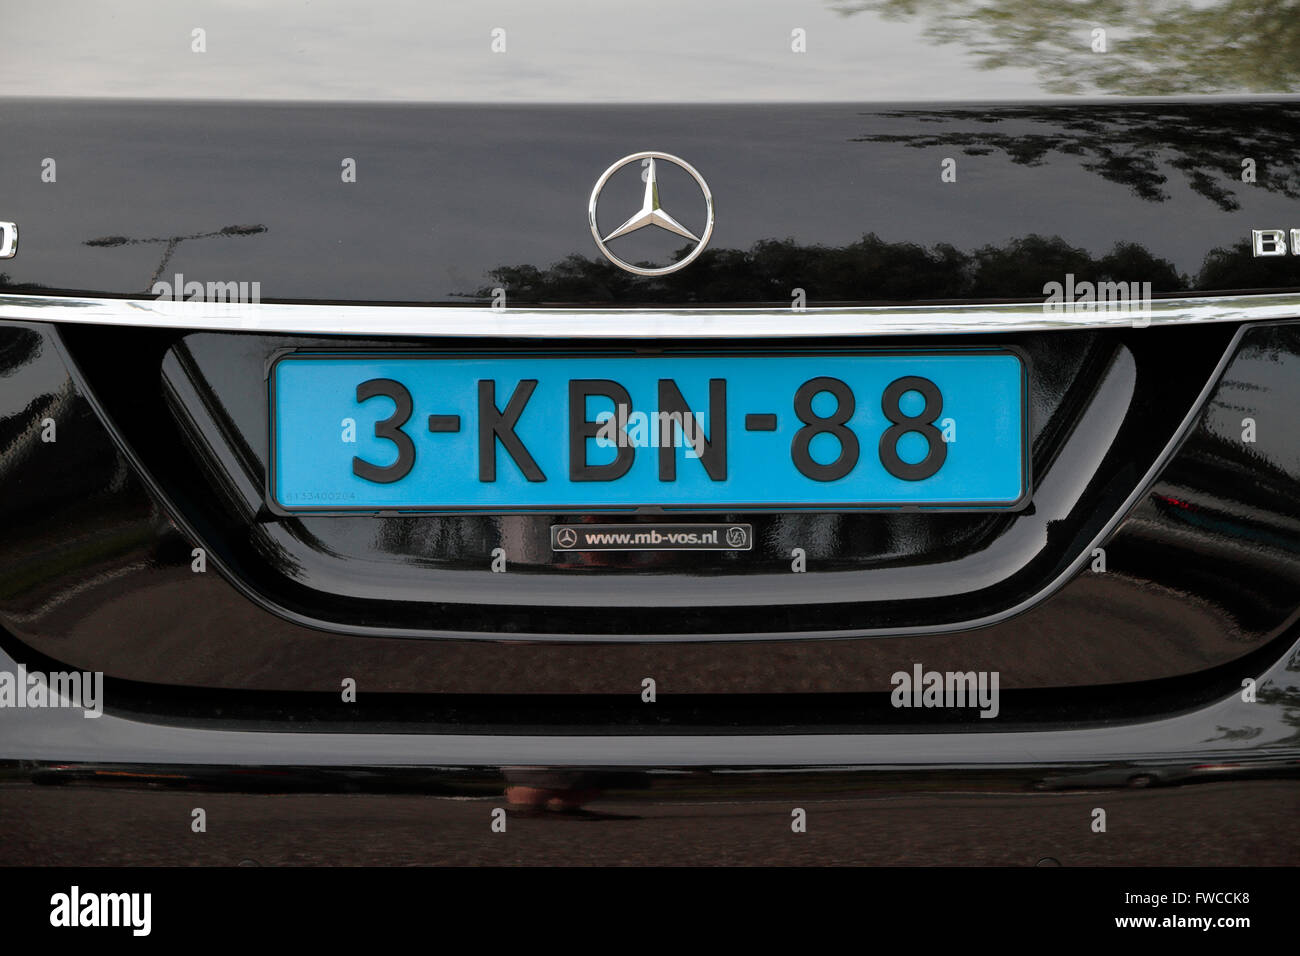 blue coloured taxi license plate on a mercedes car parked in stock photo 101691612 alamy. Black Bedroom Furniture Sets. Home Design Ideas